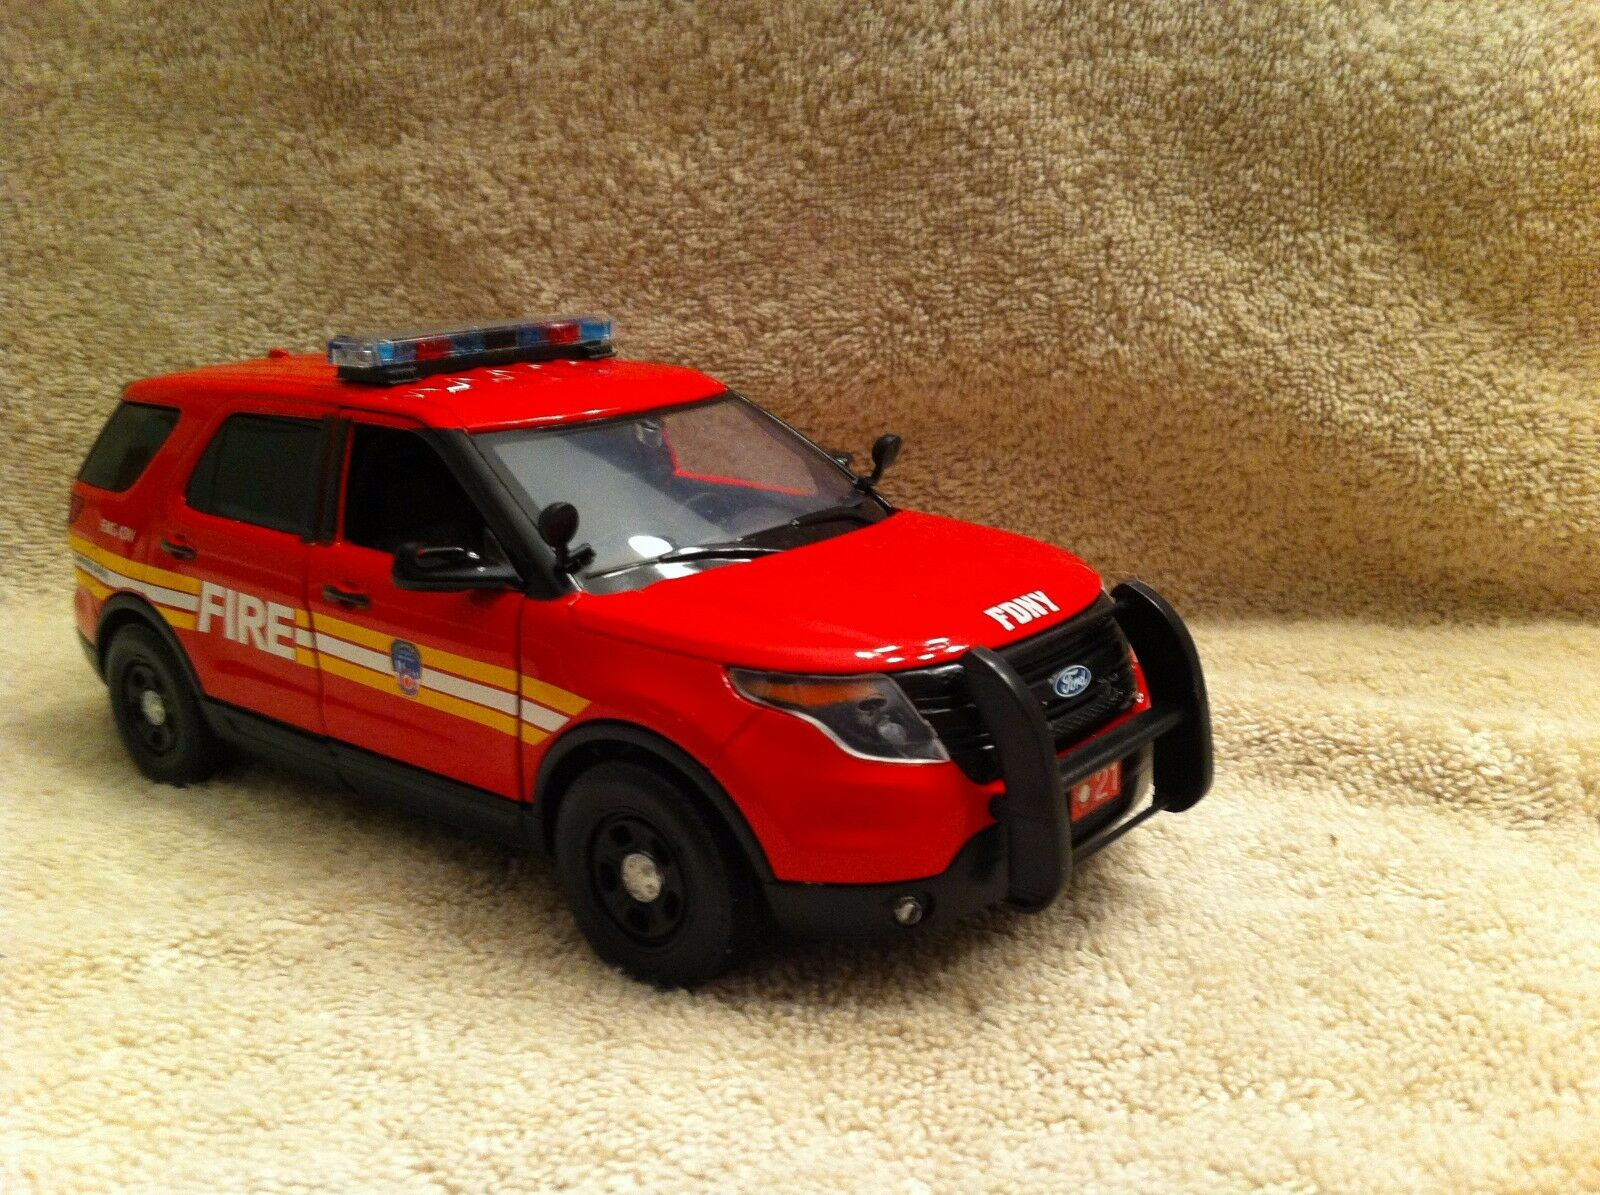 molte concessioni 1 24 SCALE F.D.N.Y FIRE FIRE FIRE DEPT FORD EXPLORER UT DIECAST WITH lavoroING luci SIREN  vendita calda online